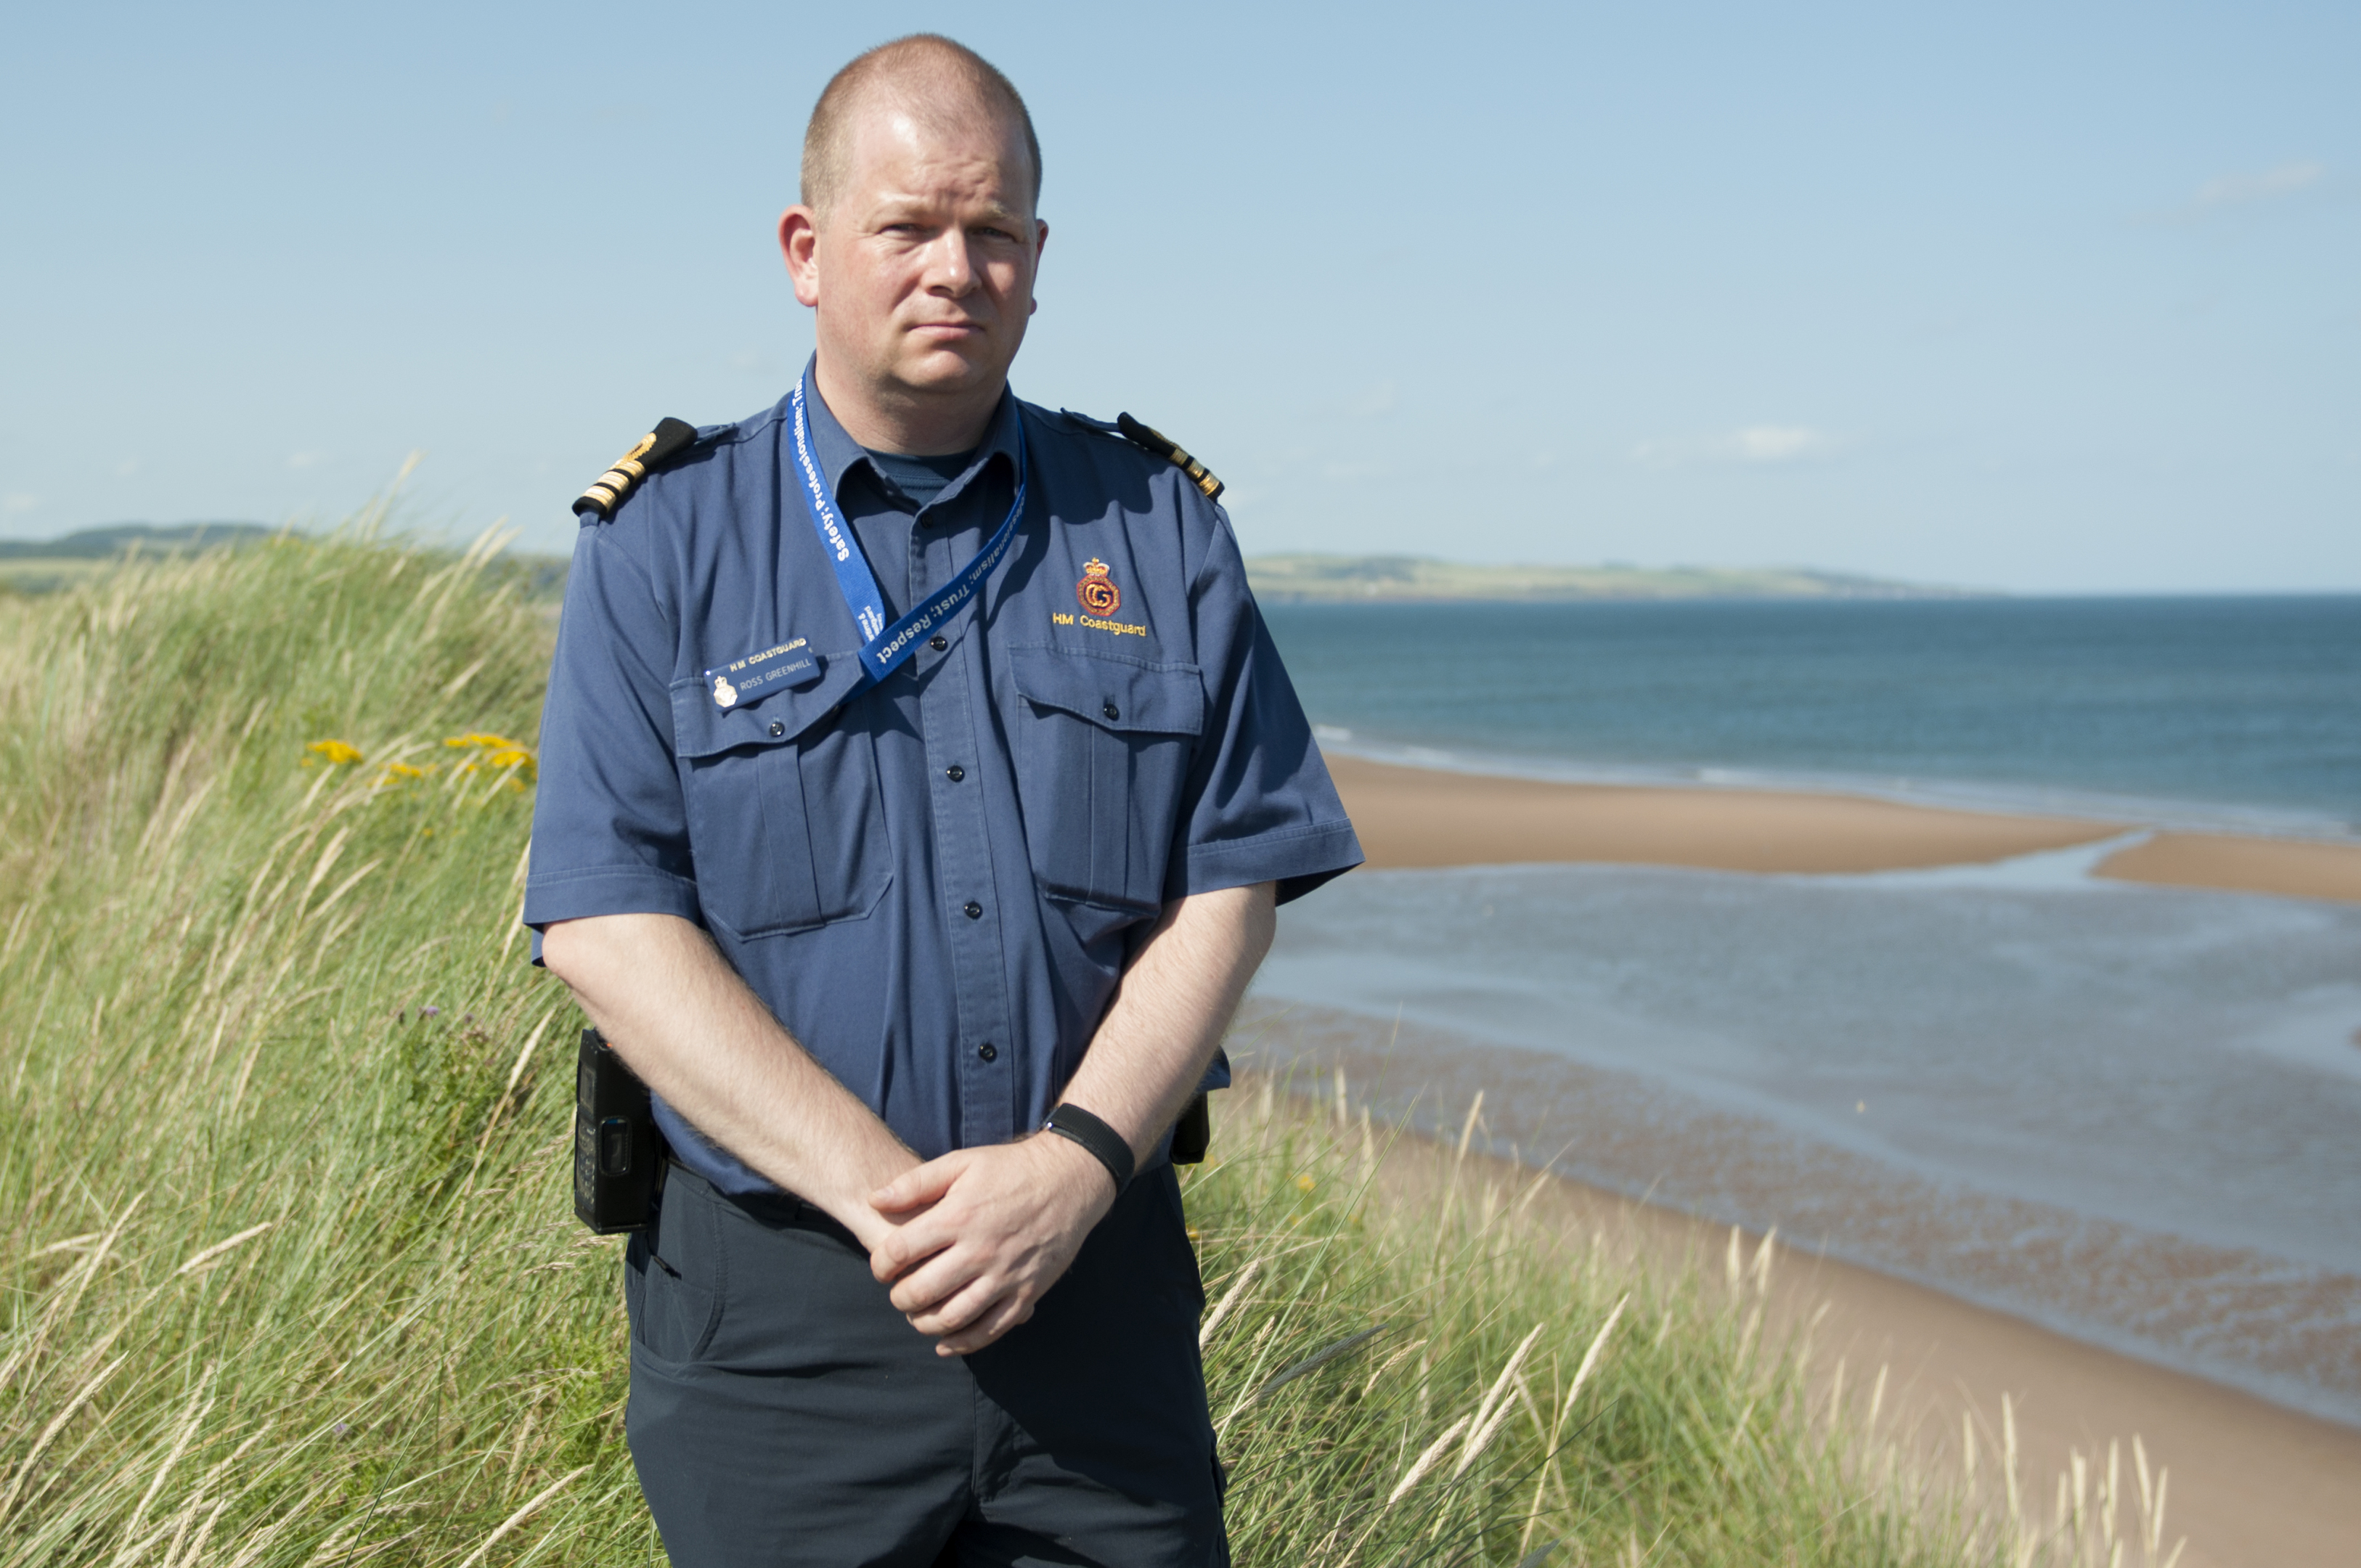 Ross Greenhill, Montrose Coastguard at the accident's location.